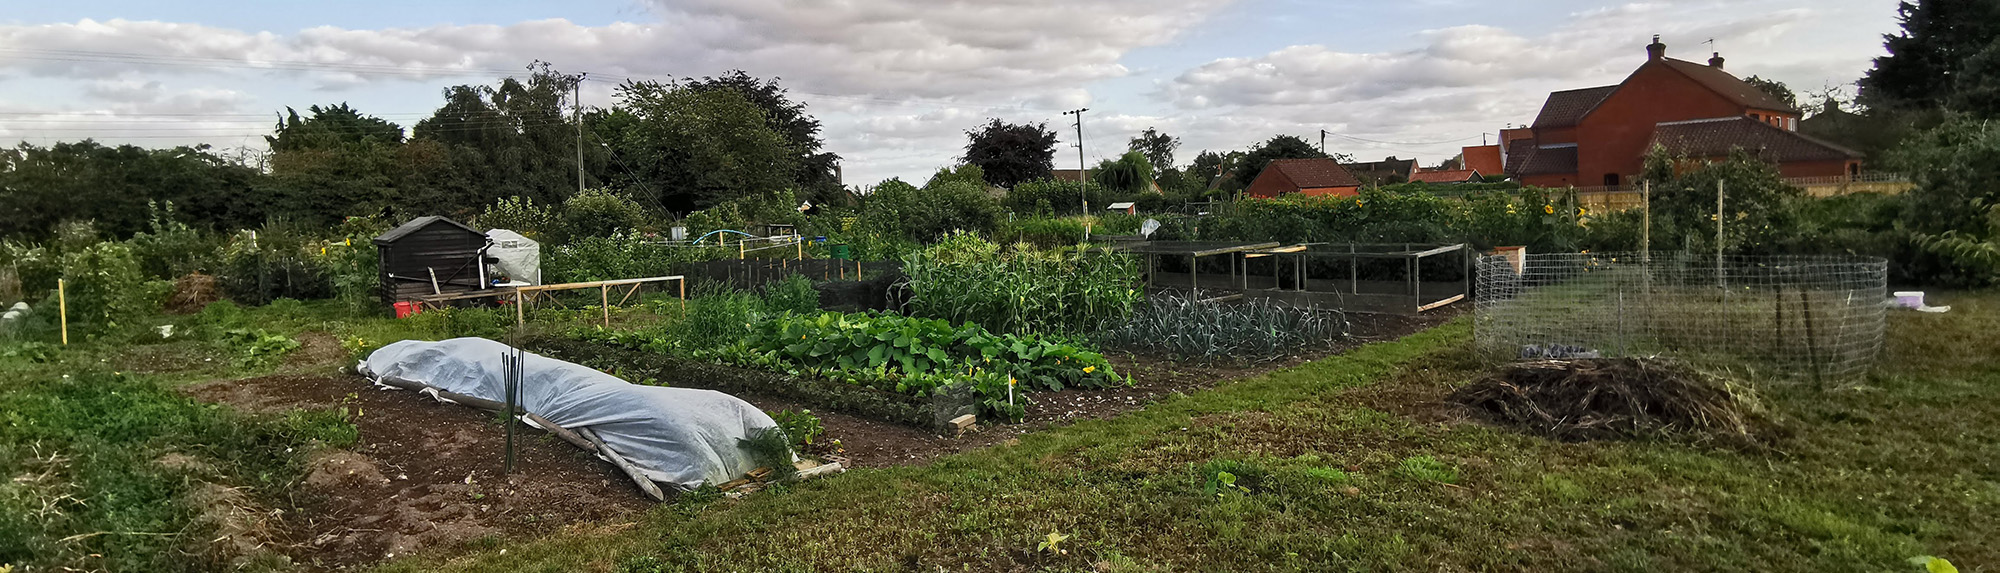 Briston allotments